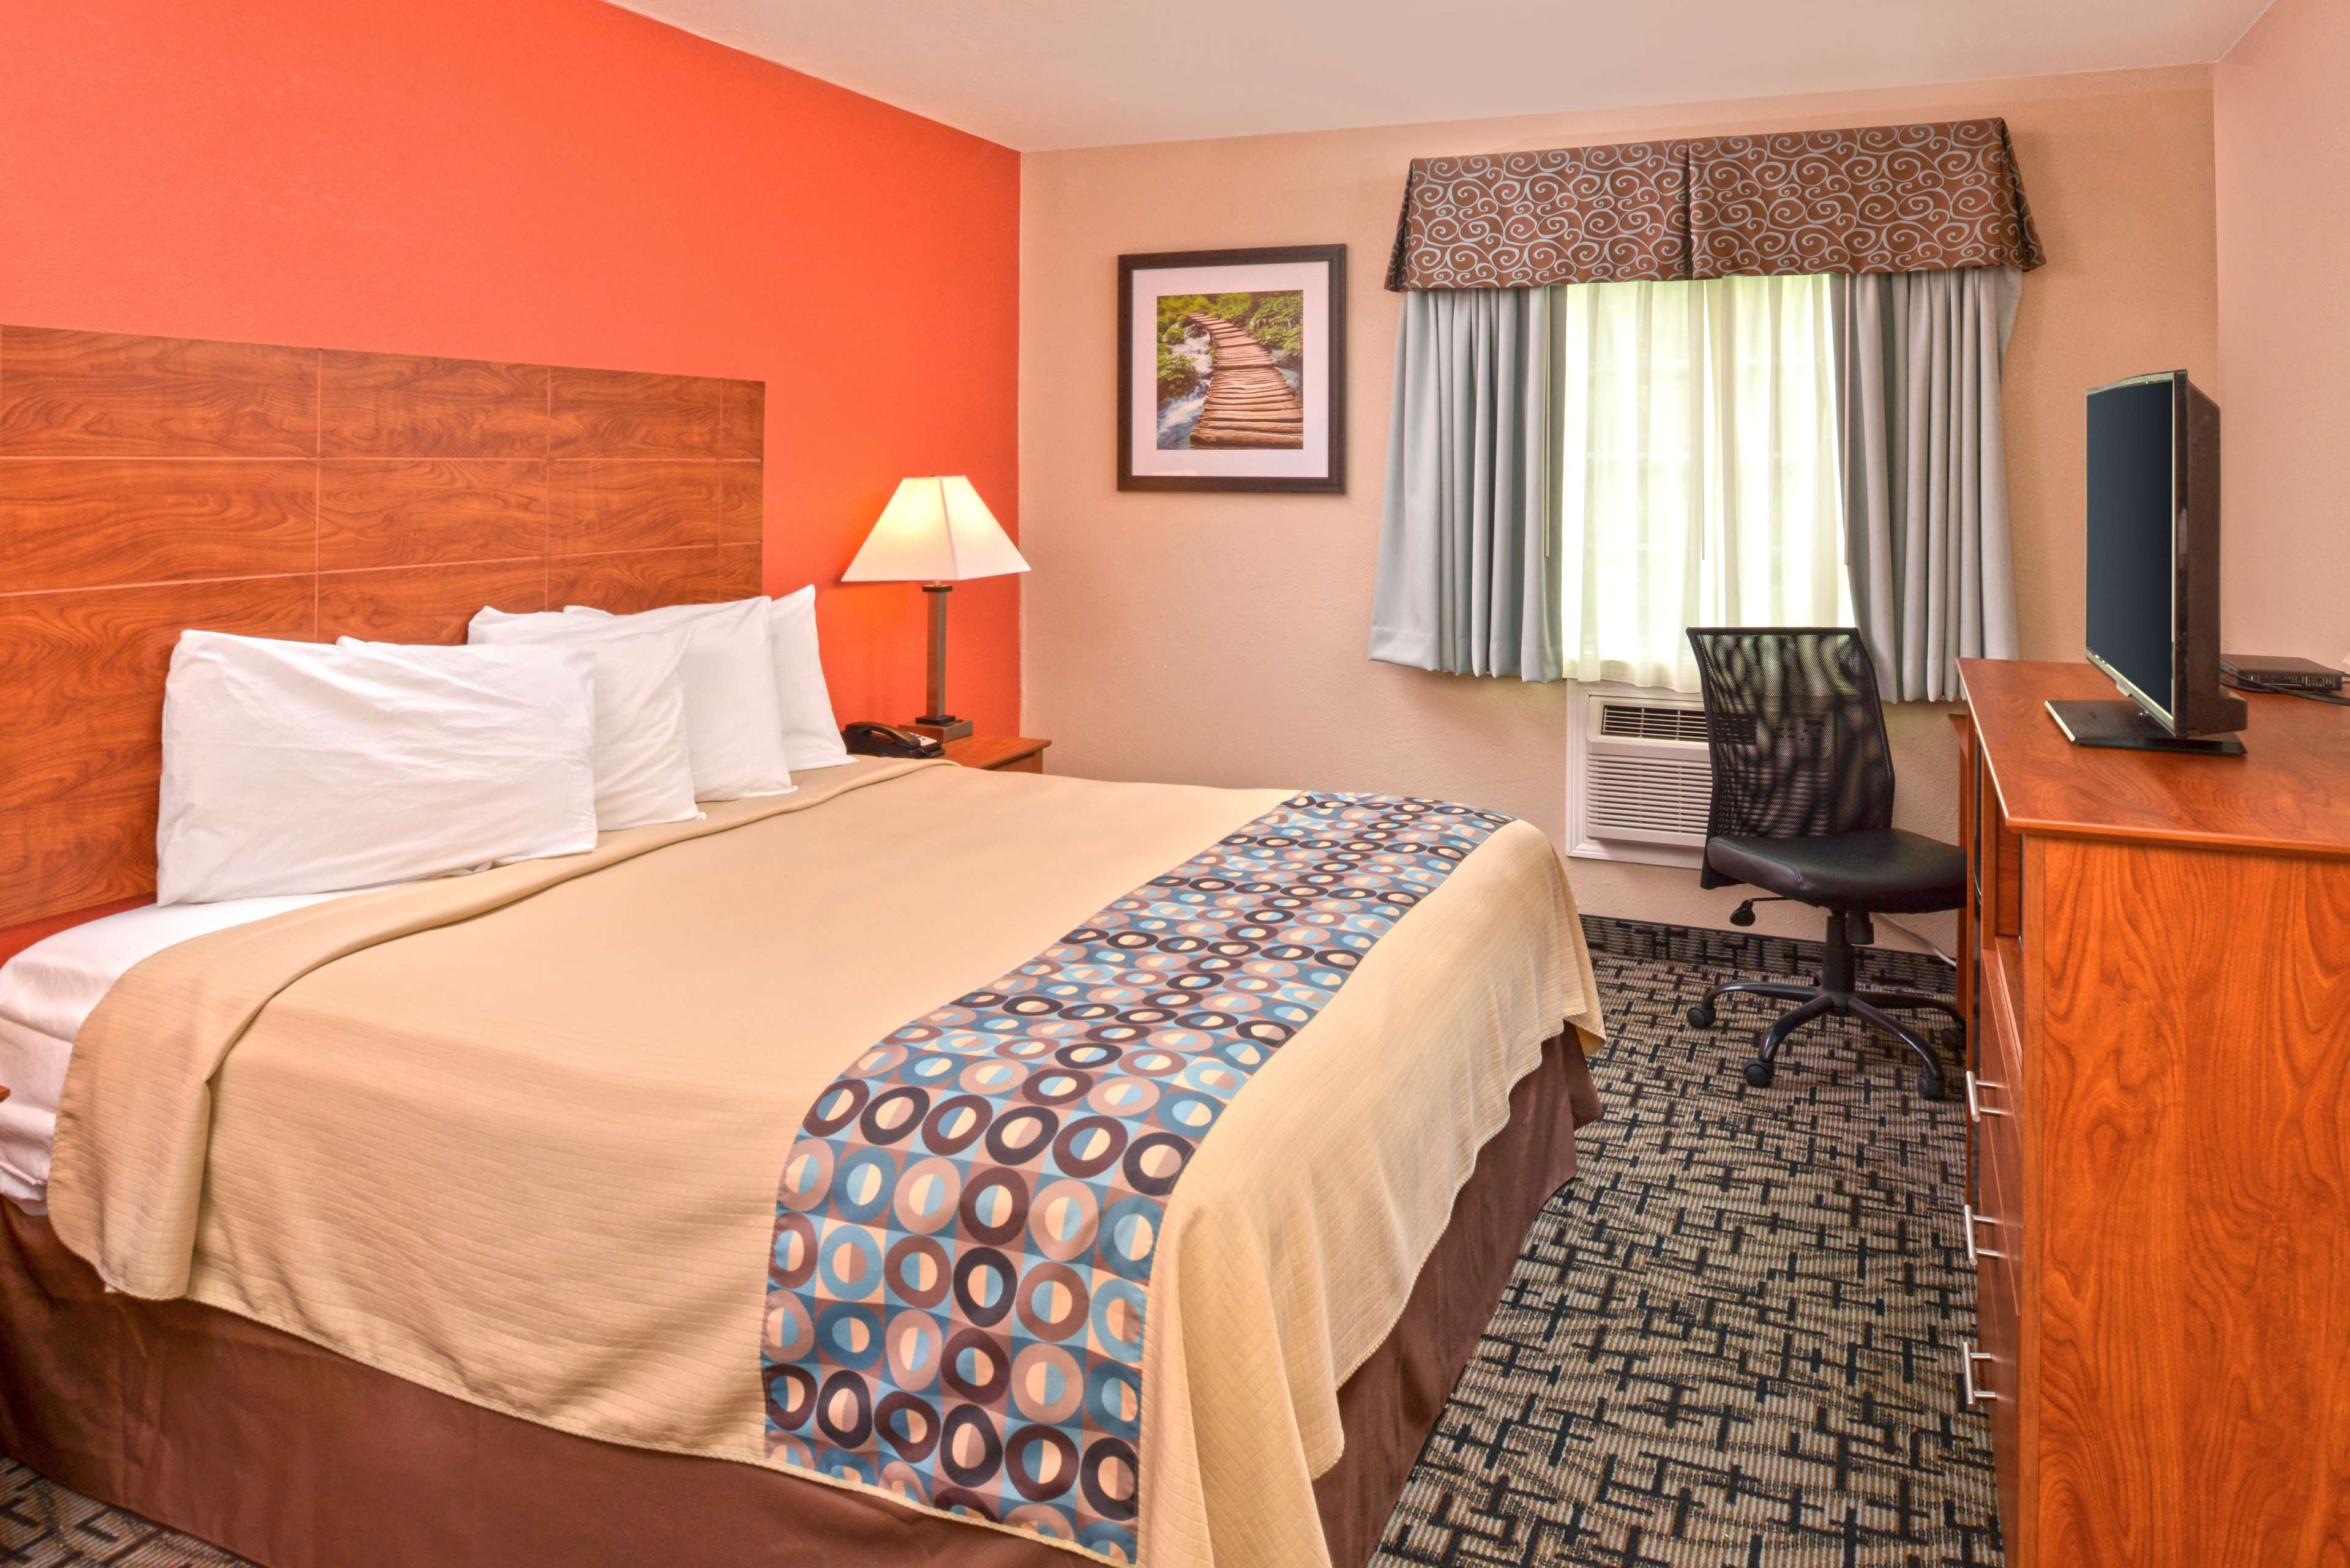 Americas best value inn putnam coupons putnam ct near me for Americas best coupon code